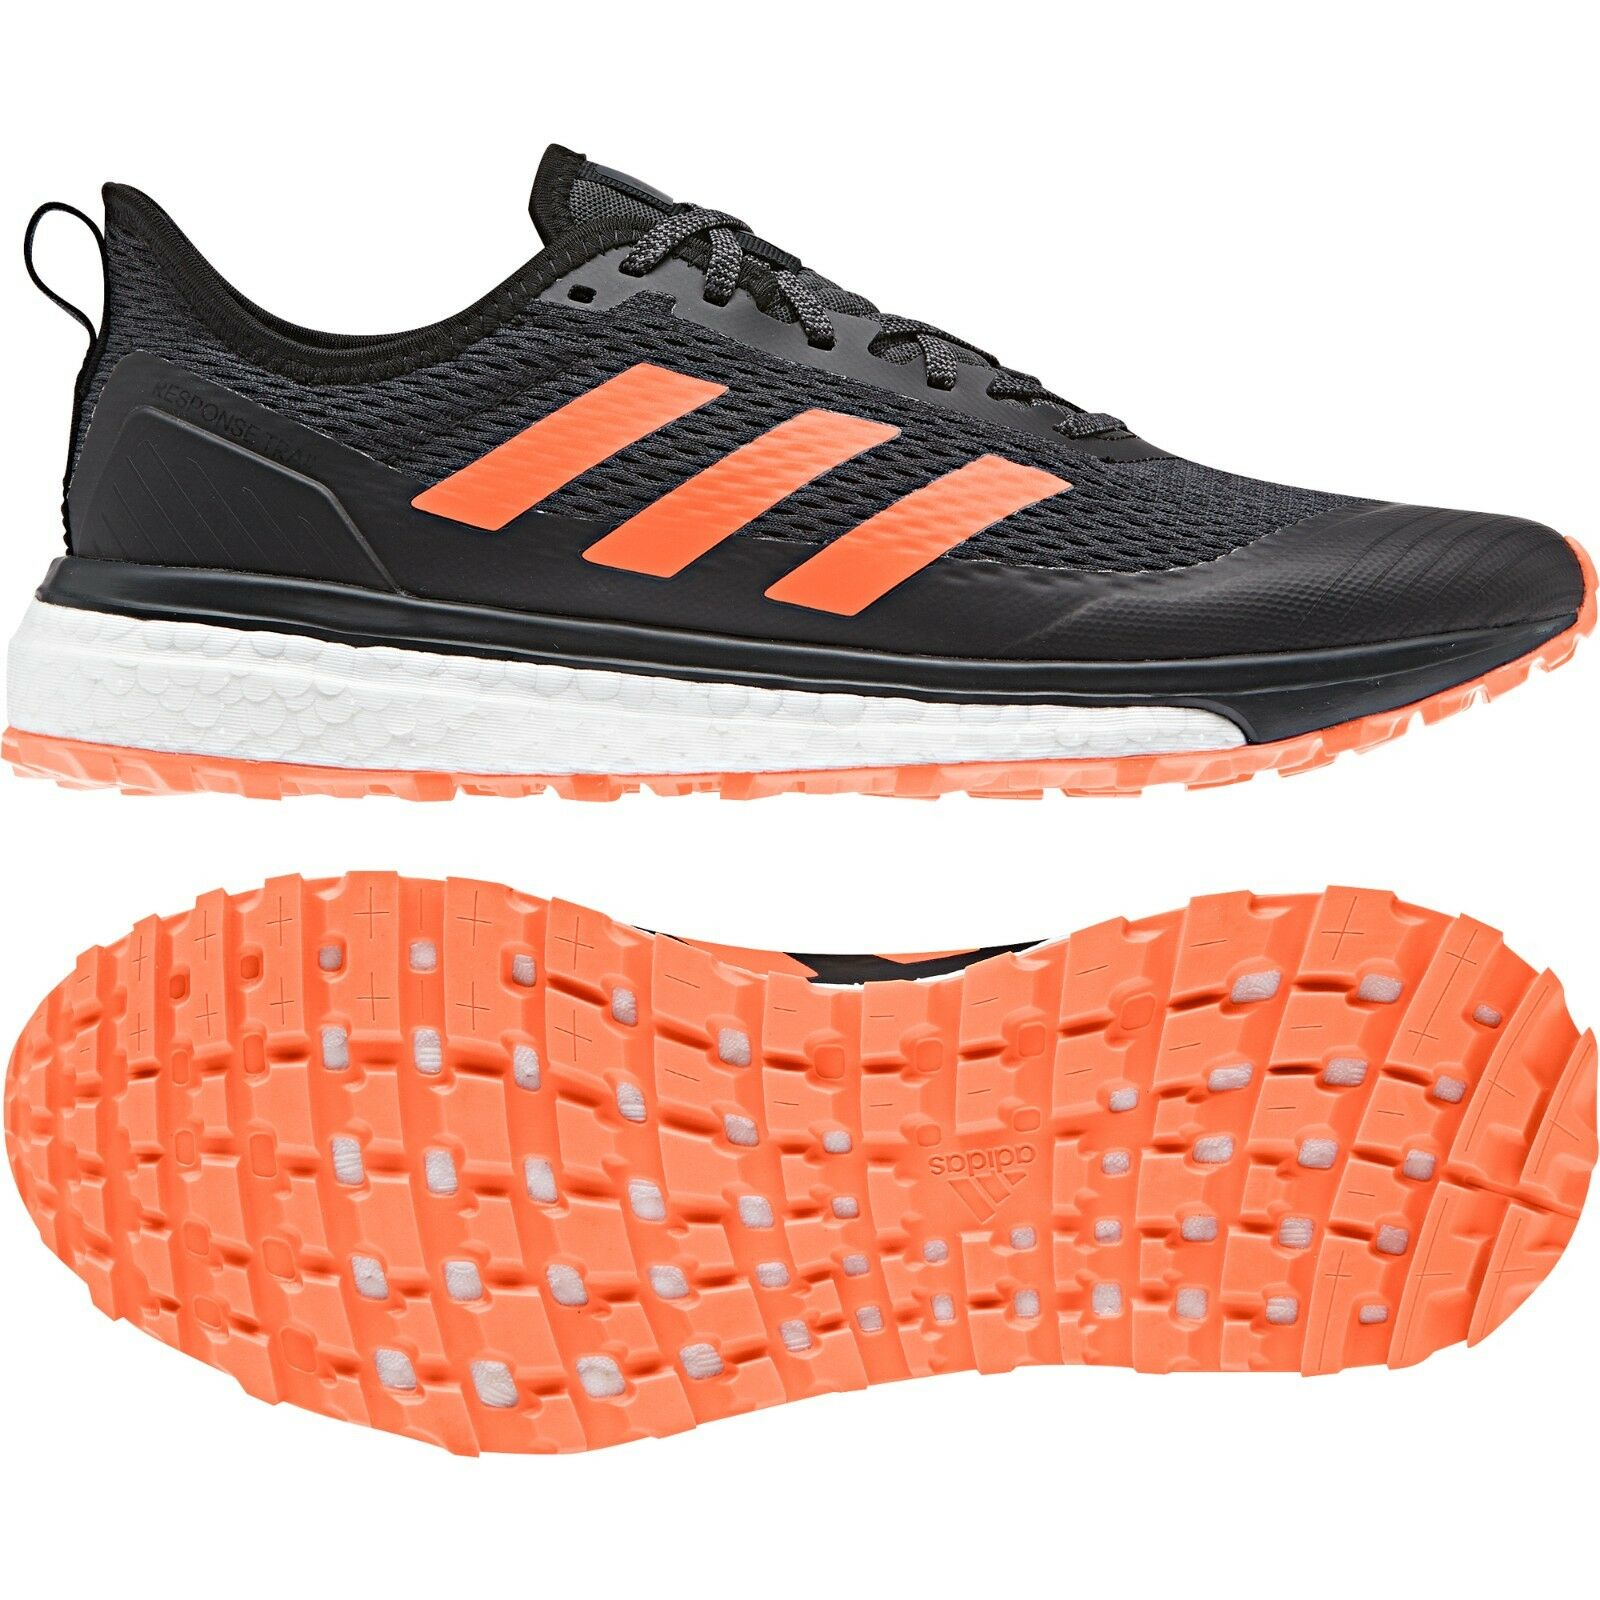 new arrivals 82ccf 5050c ADIDAS RESPONSE TRAIL BOOST MEN S RUNNING HIKING SHOES SIZE US US US 9 BLACK  BB6608 288350